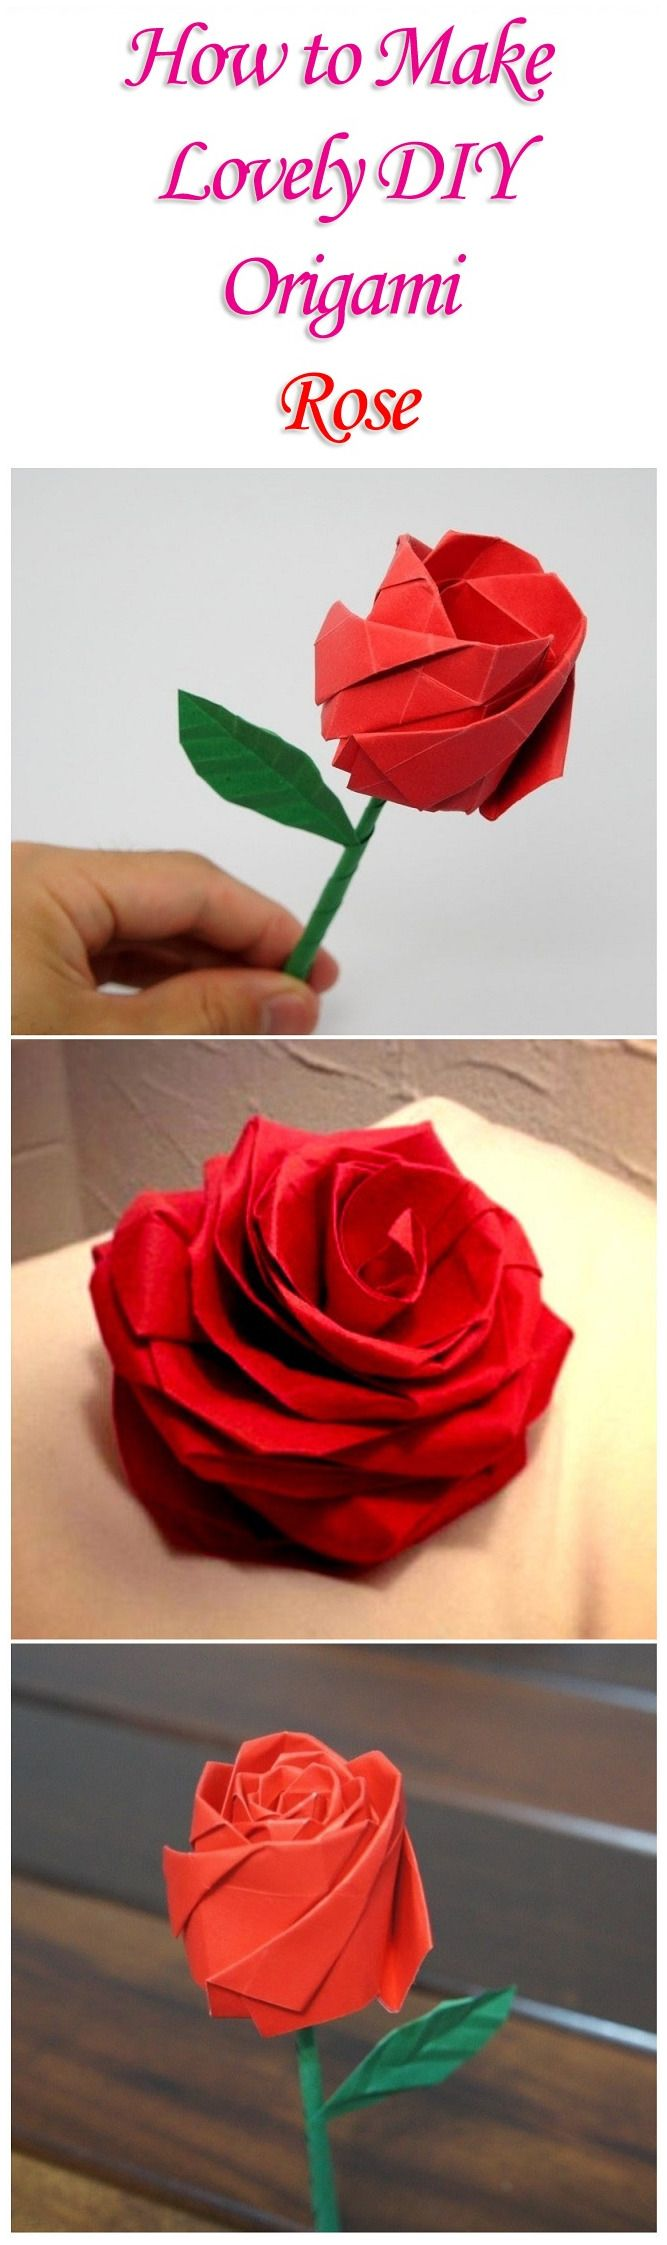 12 best origami images on pinterest origami flowers oragami and how to make lovely diy origami rose izmirmasajfo